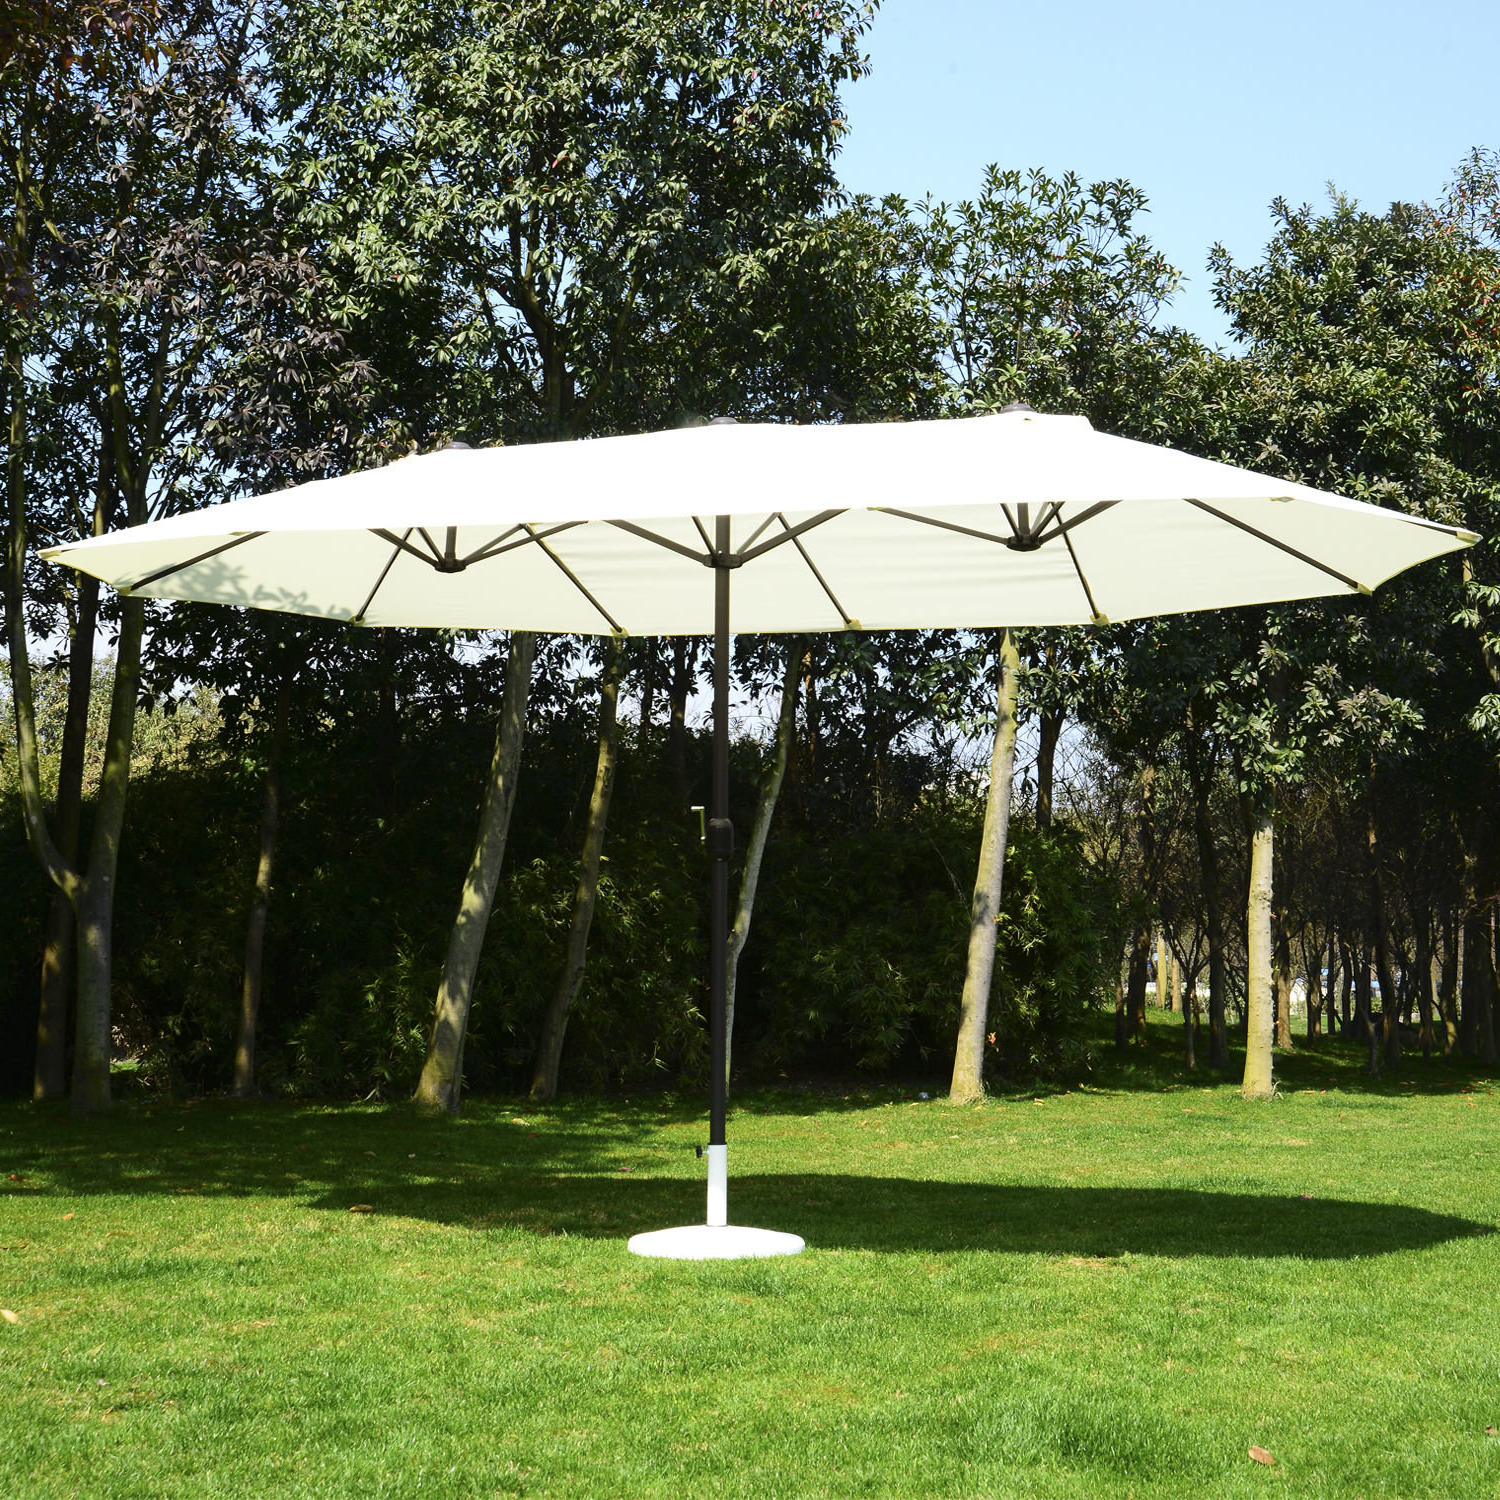 Cambon 15' Market Umbrella With Regard To Popular Lambeth Market Umbrellas (View 17 of 20)